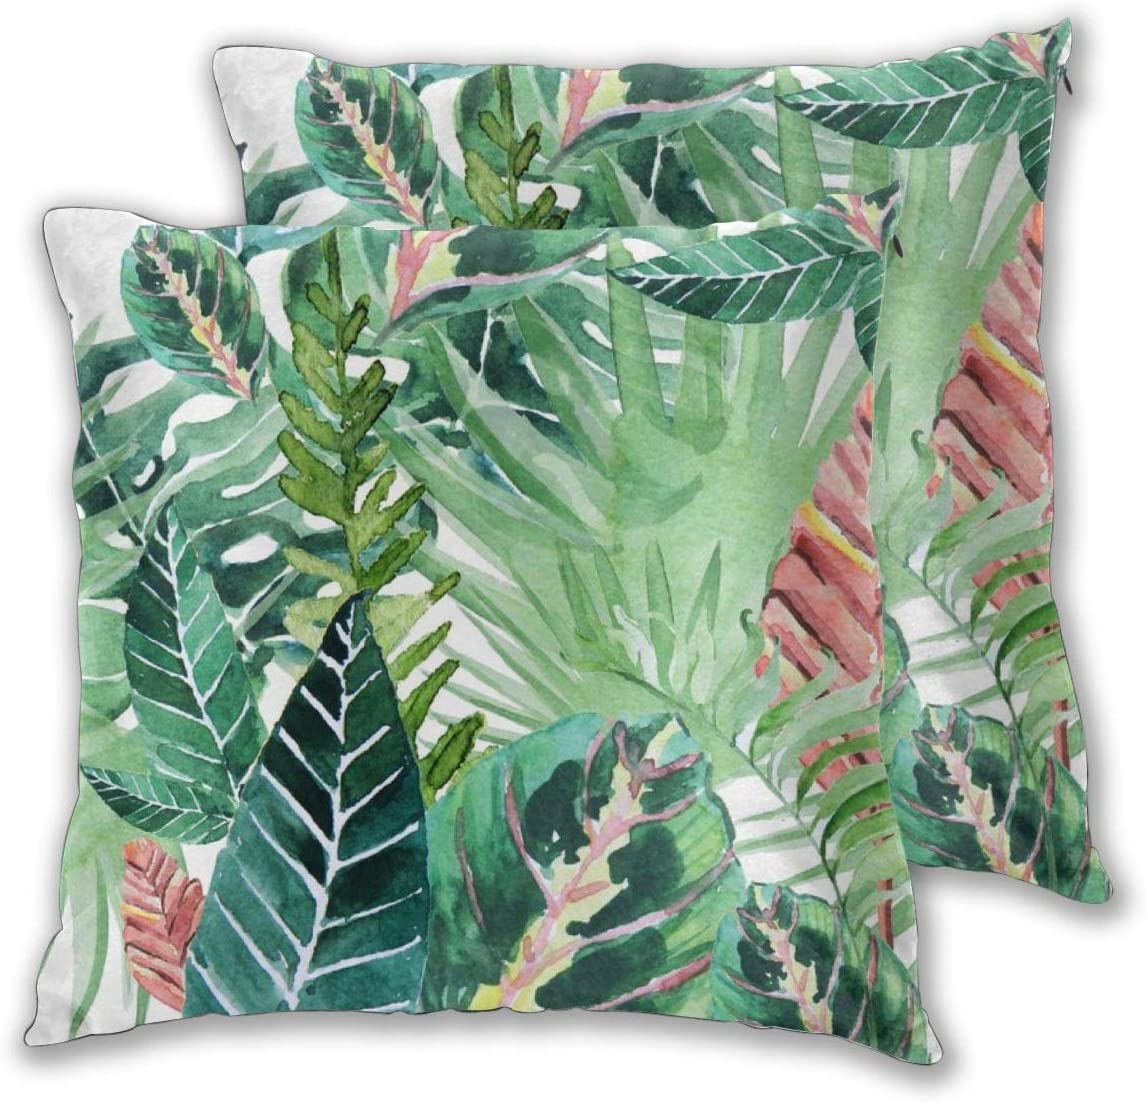 Cushion Covers Pack of 2 Cushion Covers Throw Pillow Cases Shells for Couch Sofa Home Decor Havana Jungle 45cm x ...